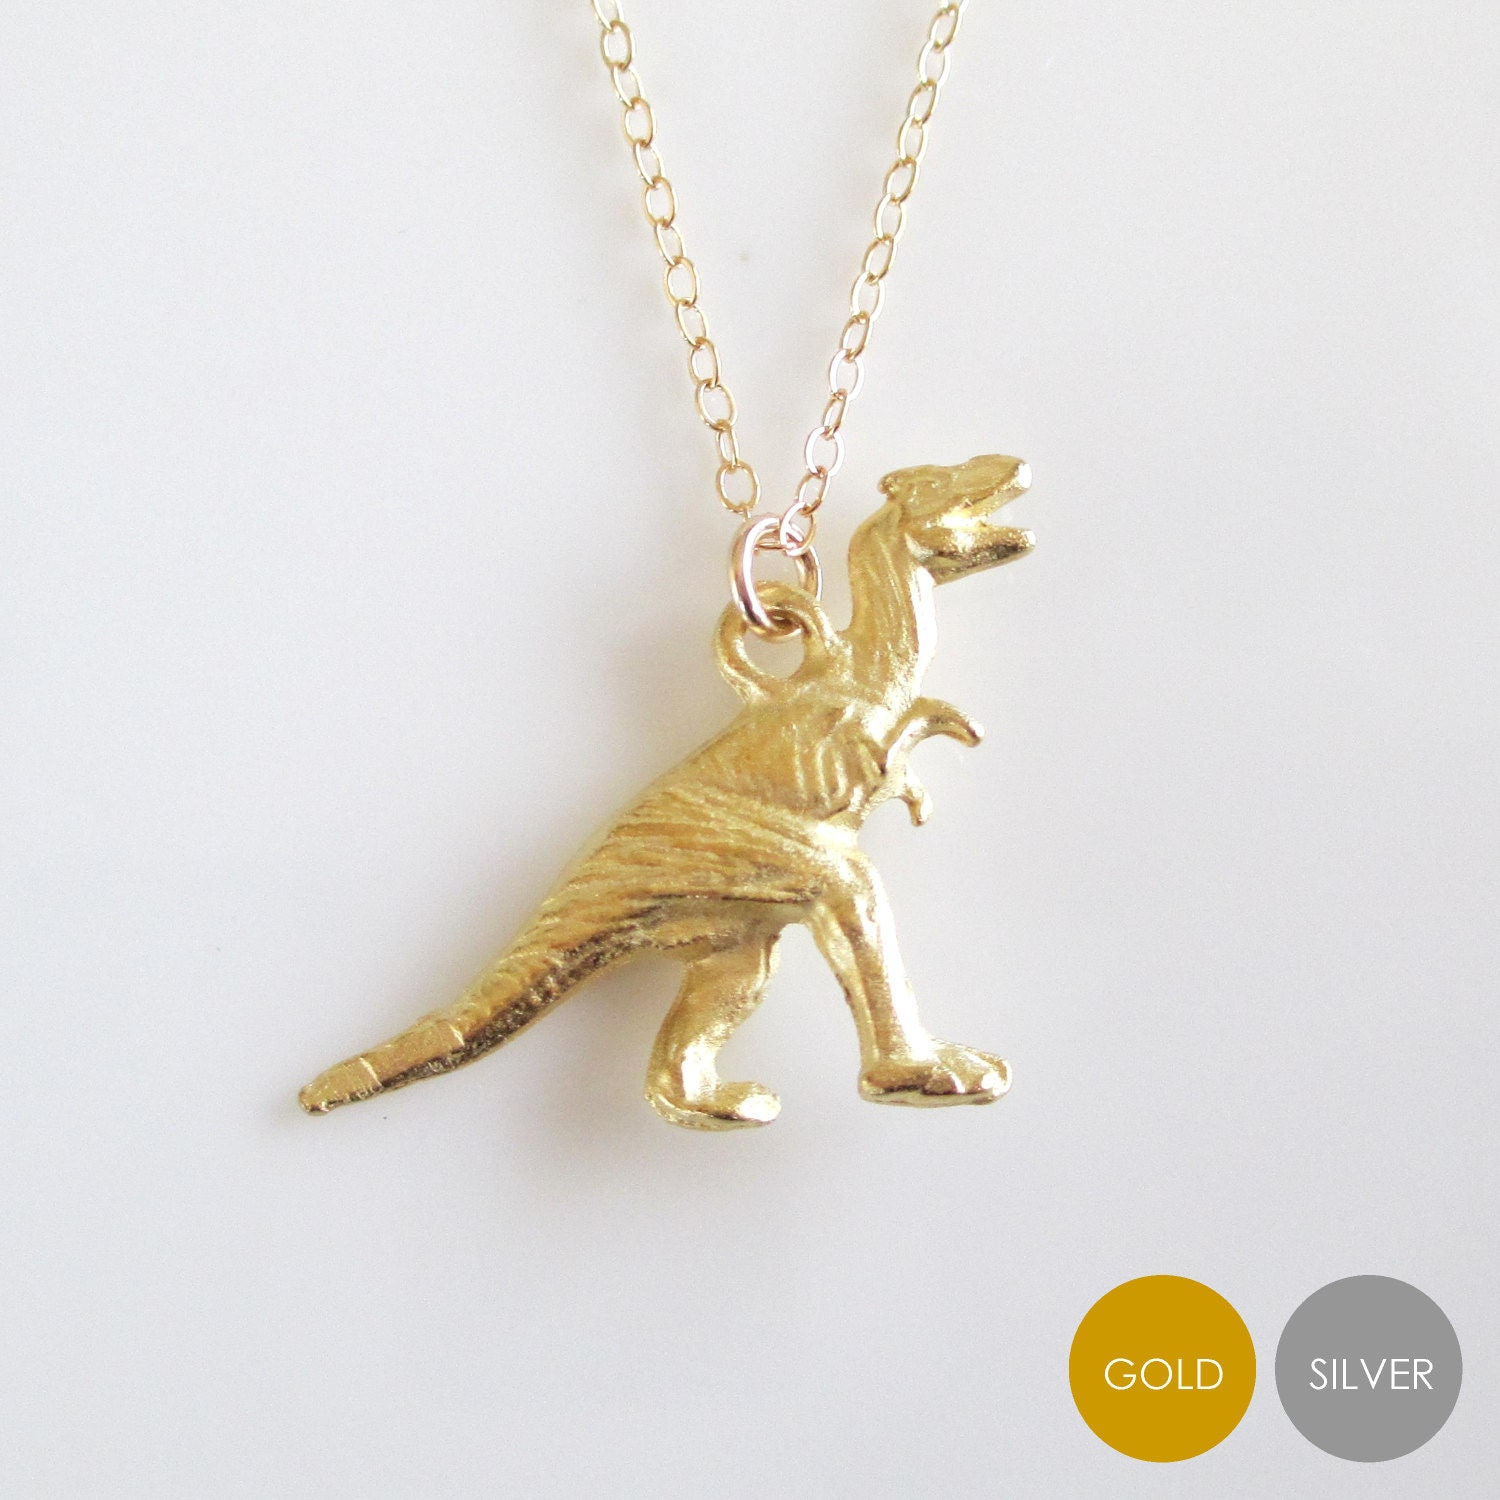 products little pendant dinosaur the lux necklace david